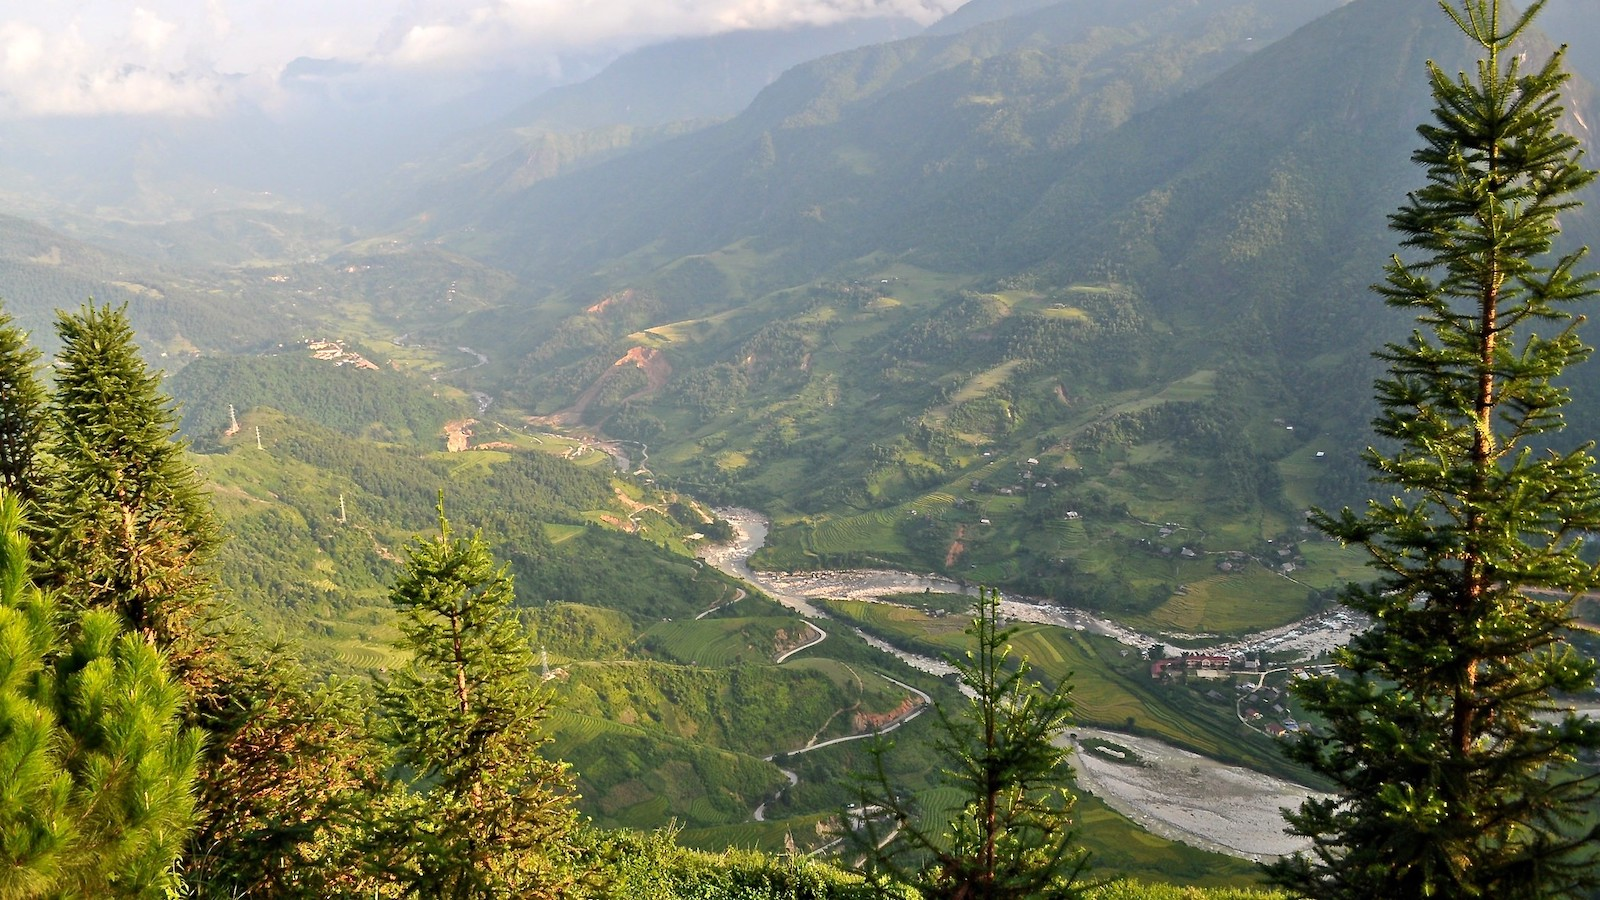 Image of the landscape in Lao Cai Province, Vietnam